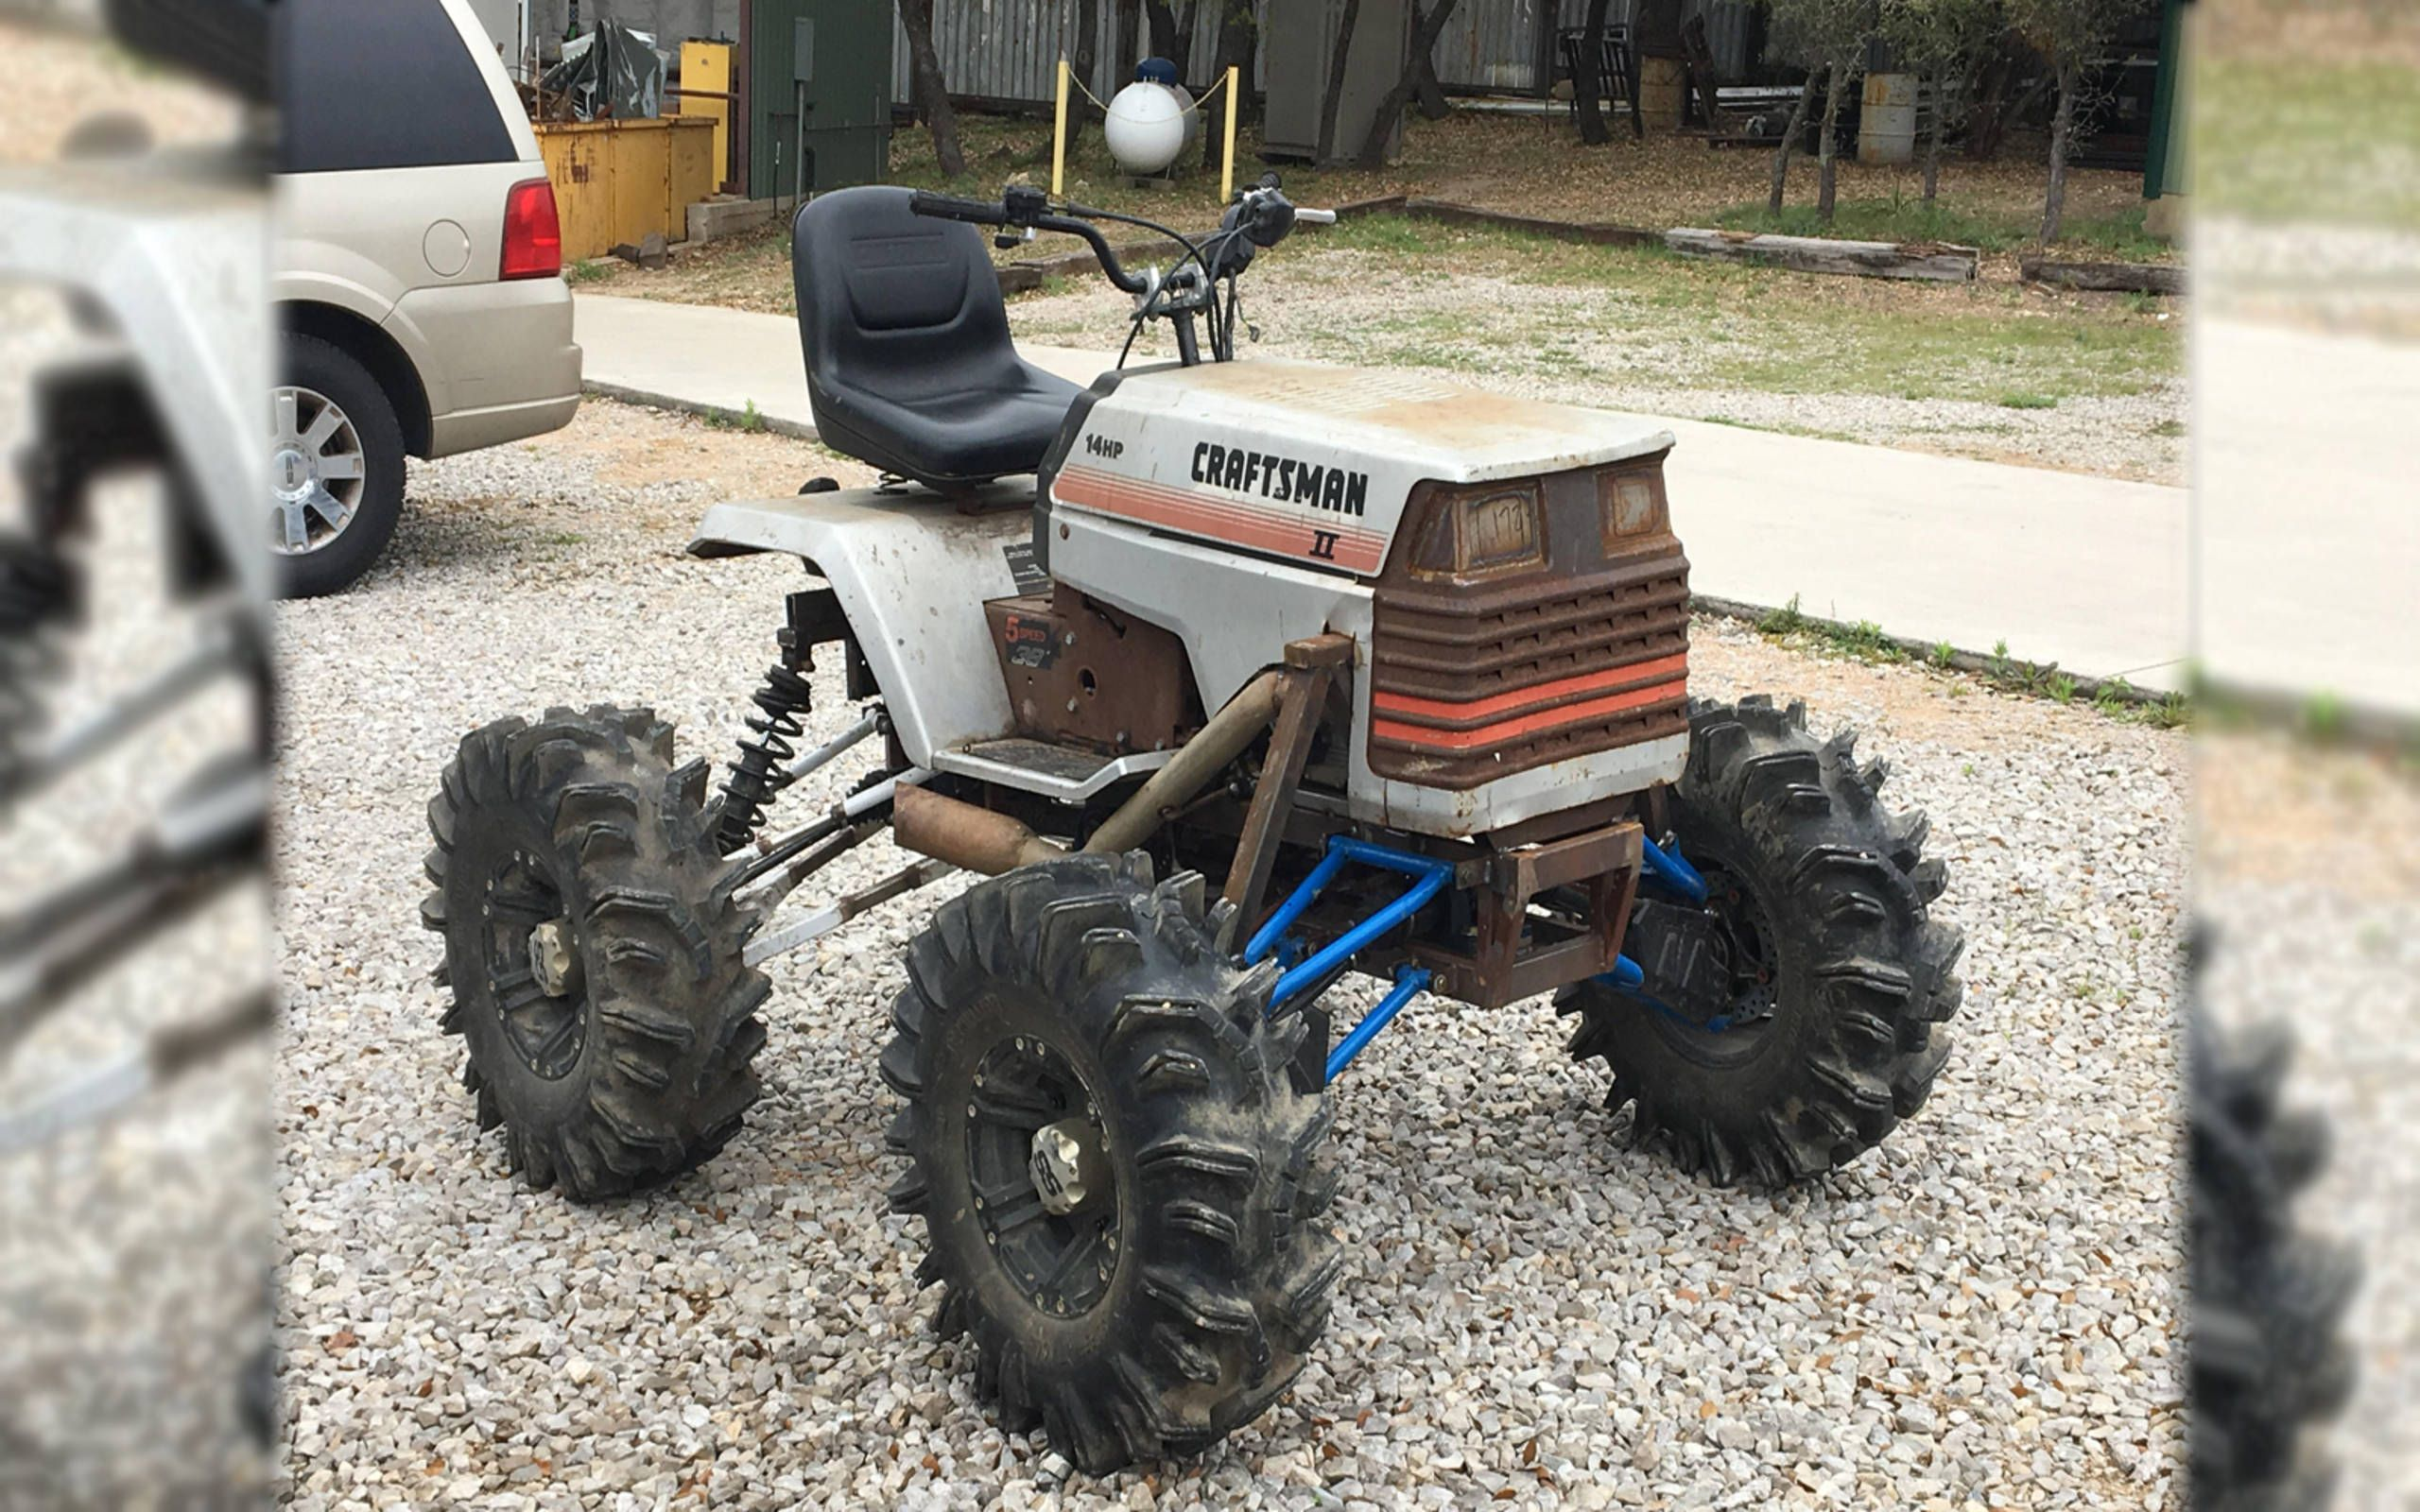 Extreme Yard Care Lifted Lawn Tractors Are A Rabbit Hole Of Diyers